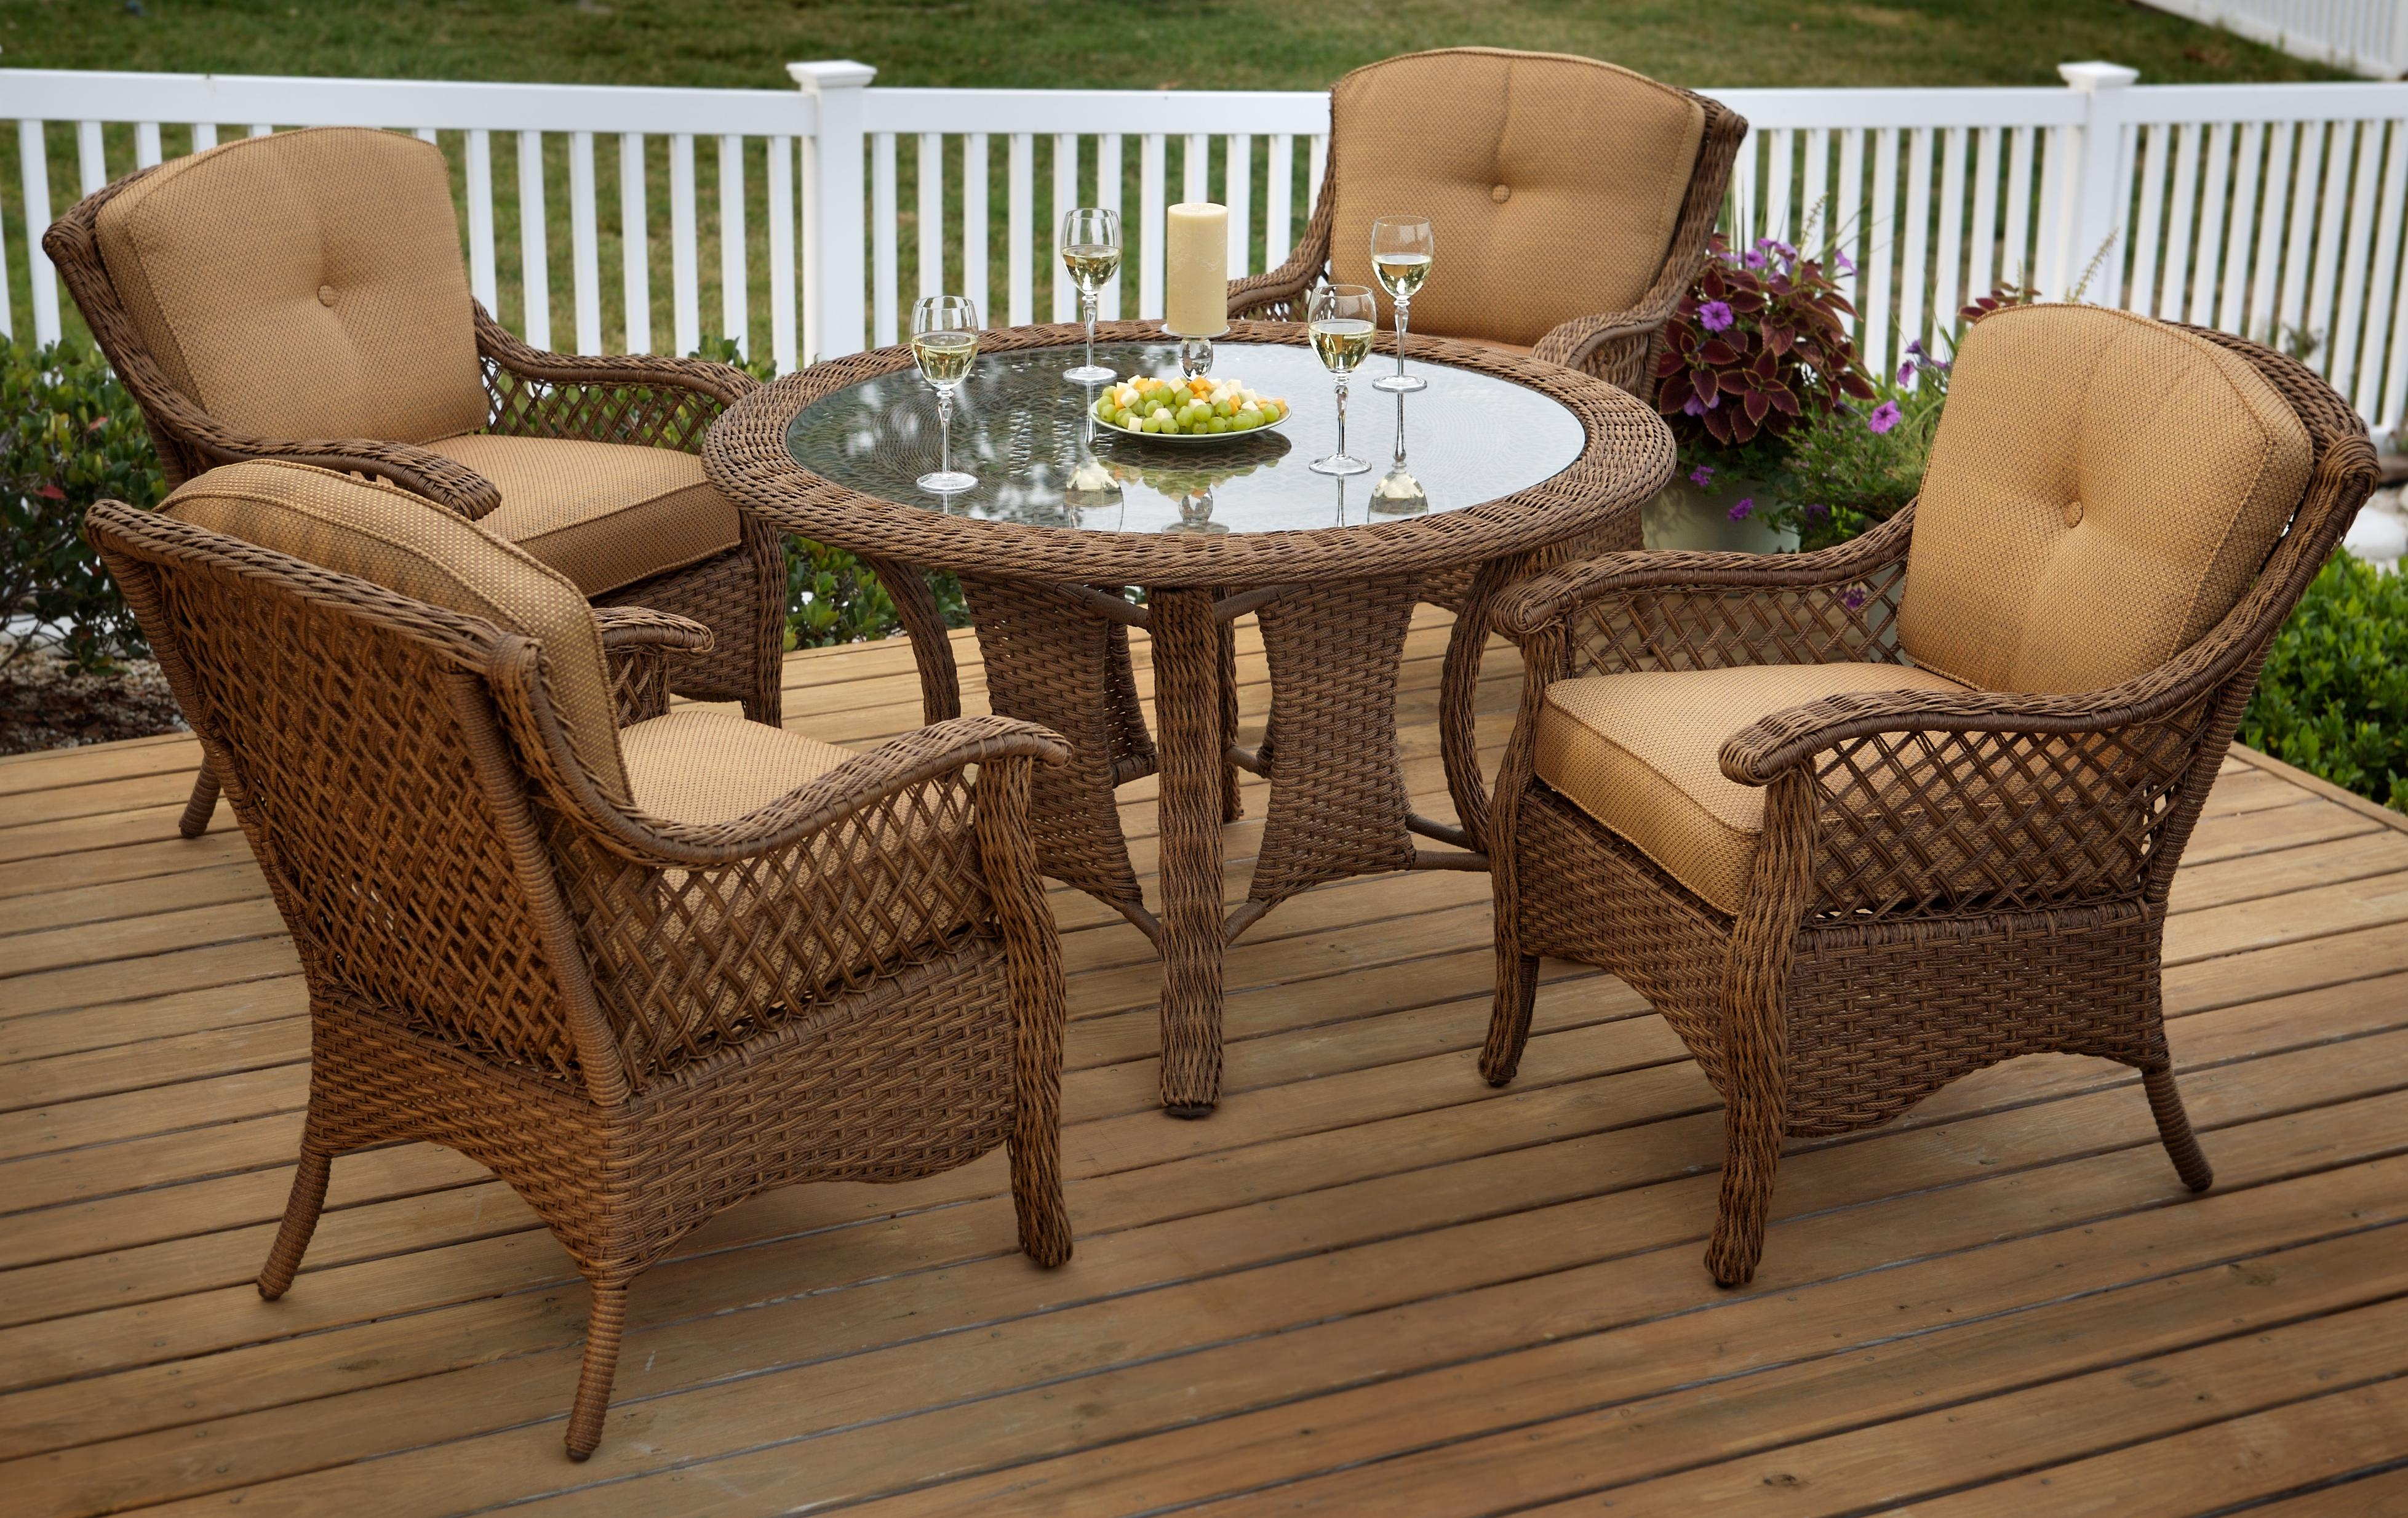 round outdoor dining sets. Contemporary Dining VerandaAgio 5 Piece Outdoor Dining Set With Tan Woven Glass Top Round  Table And 4 Chairs By Agio And Sets D